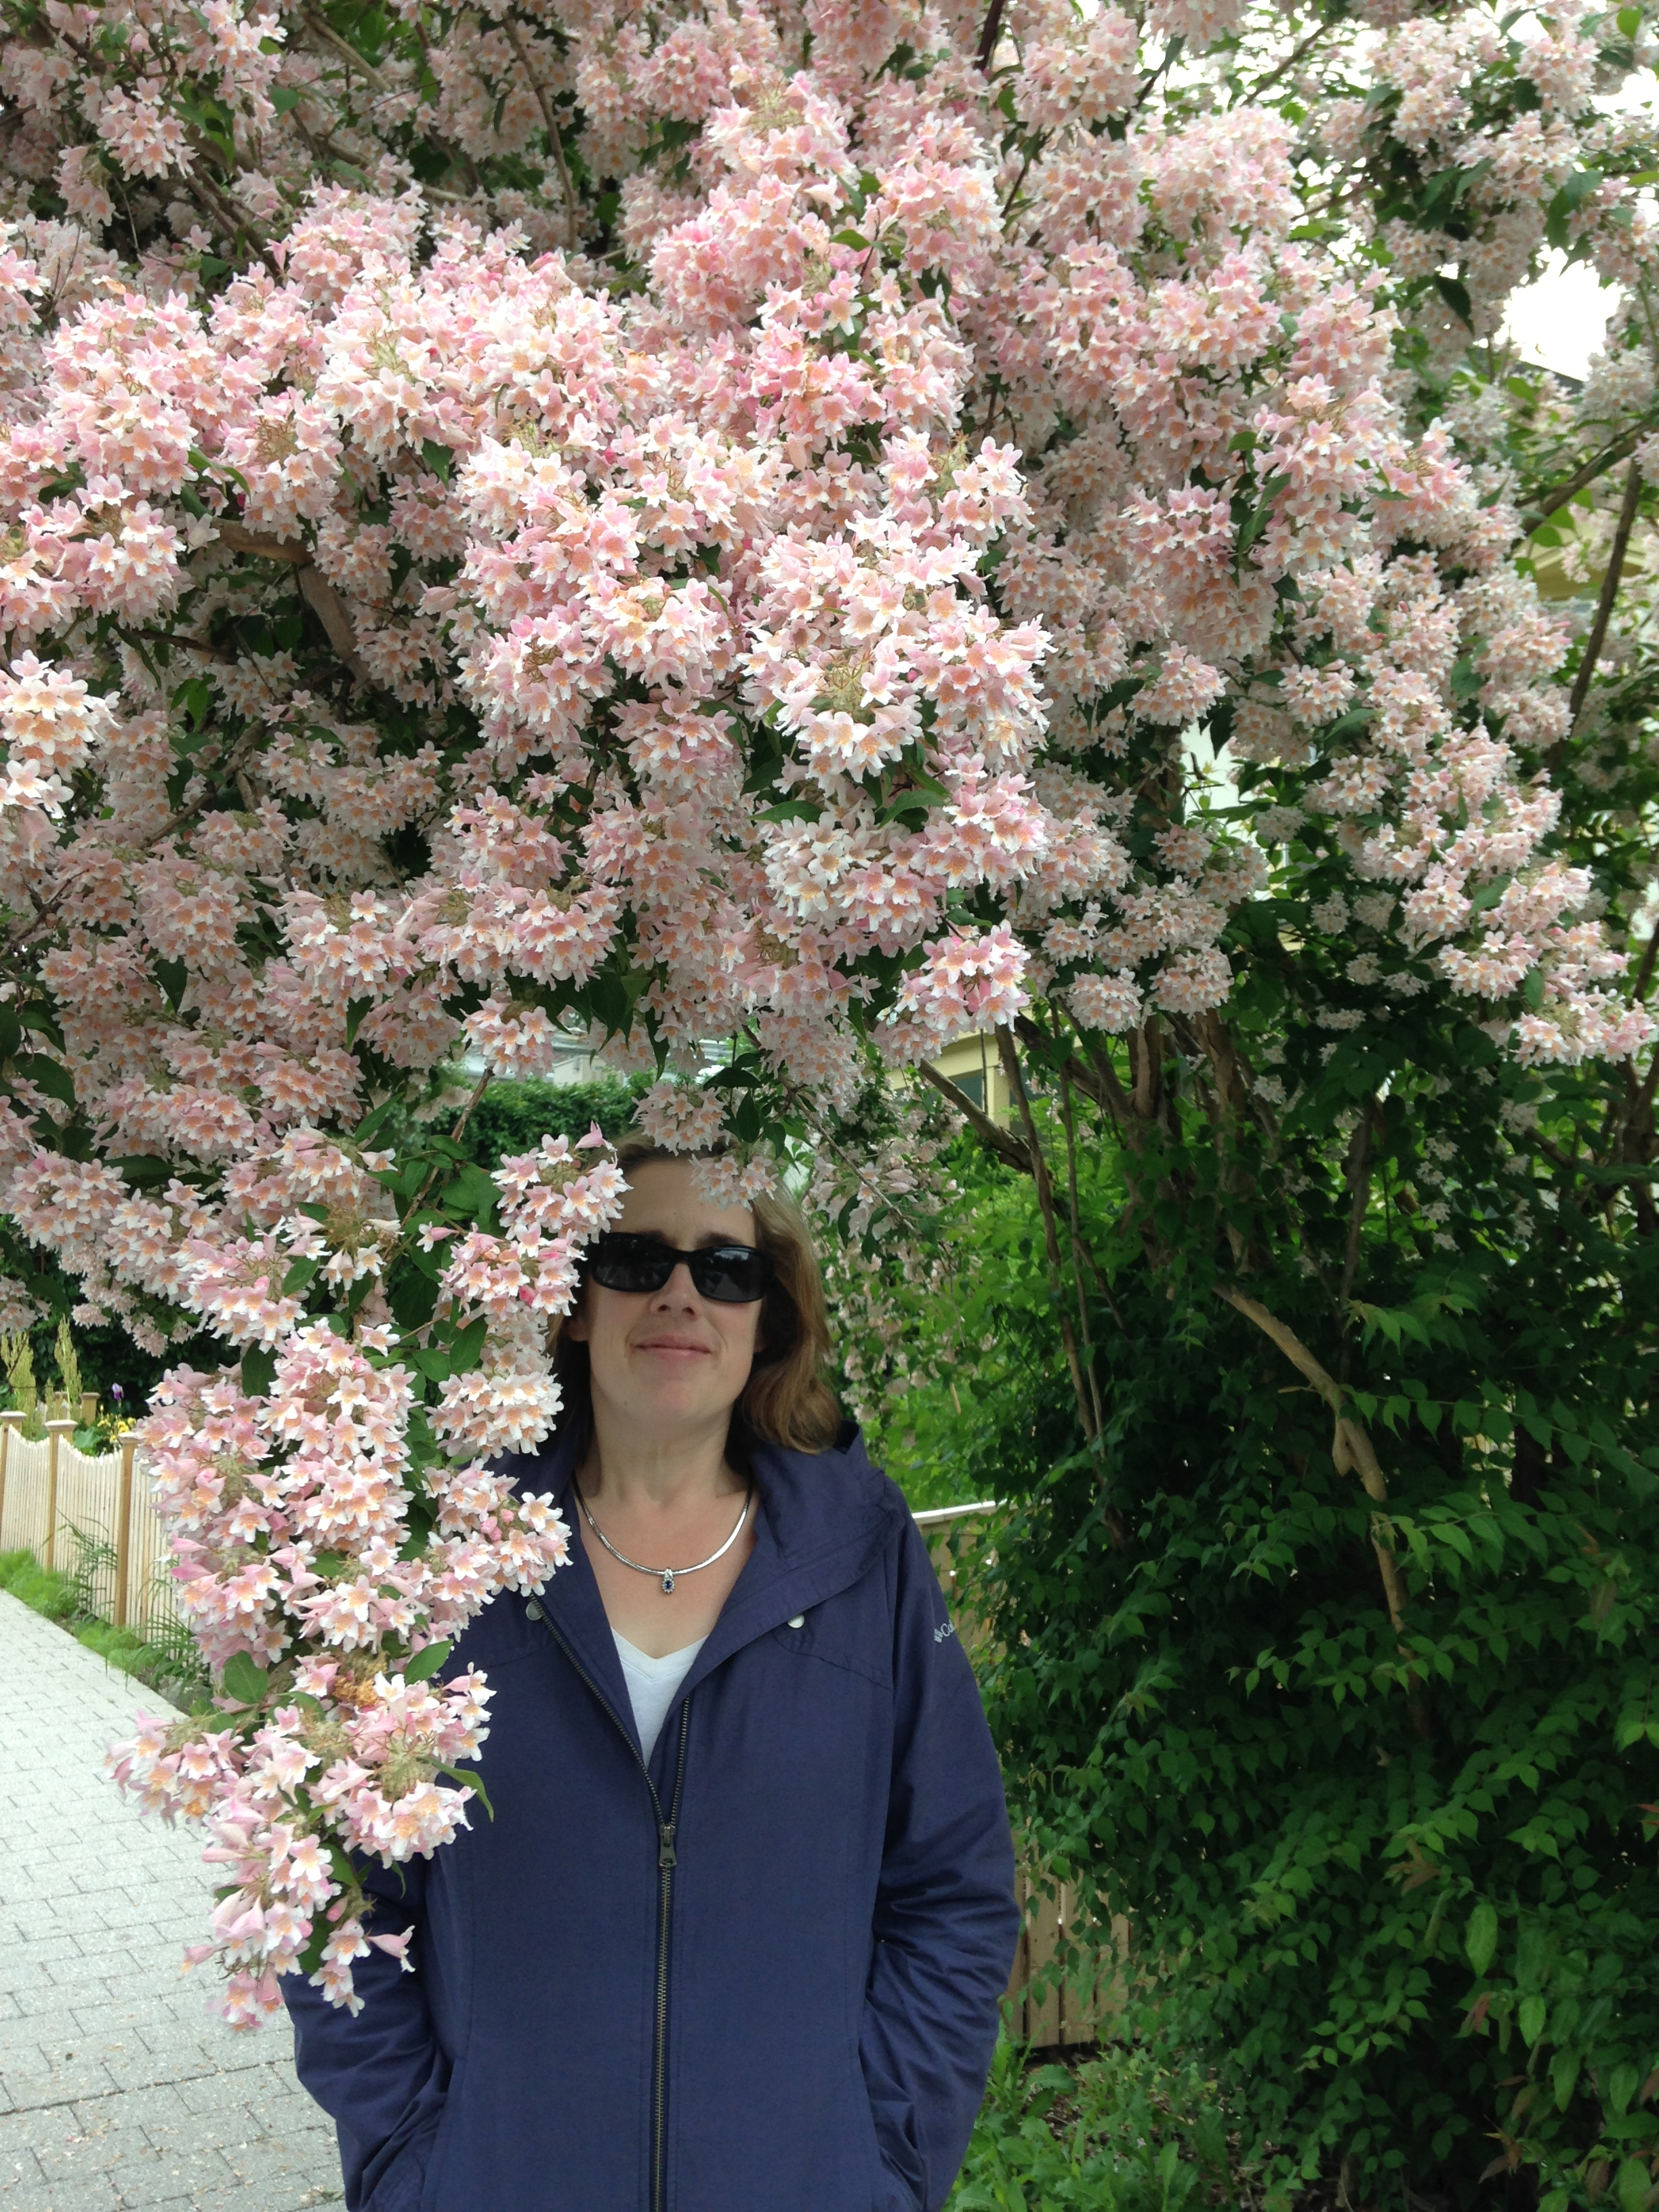 Me with flowers